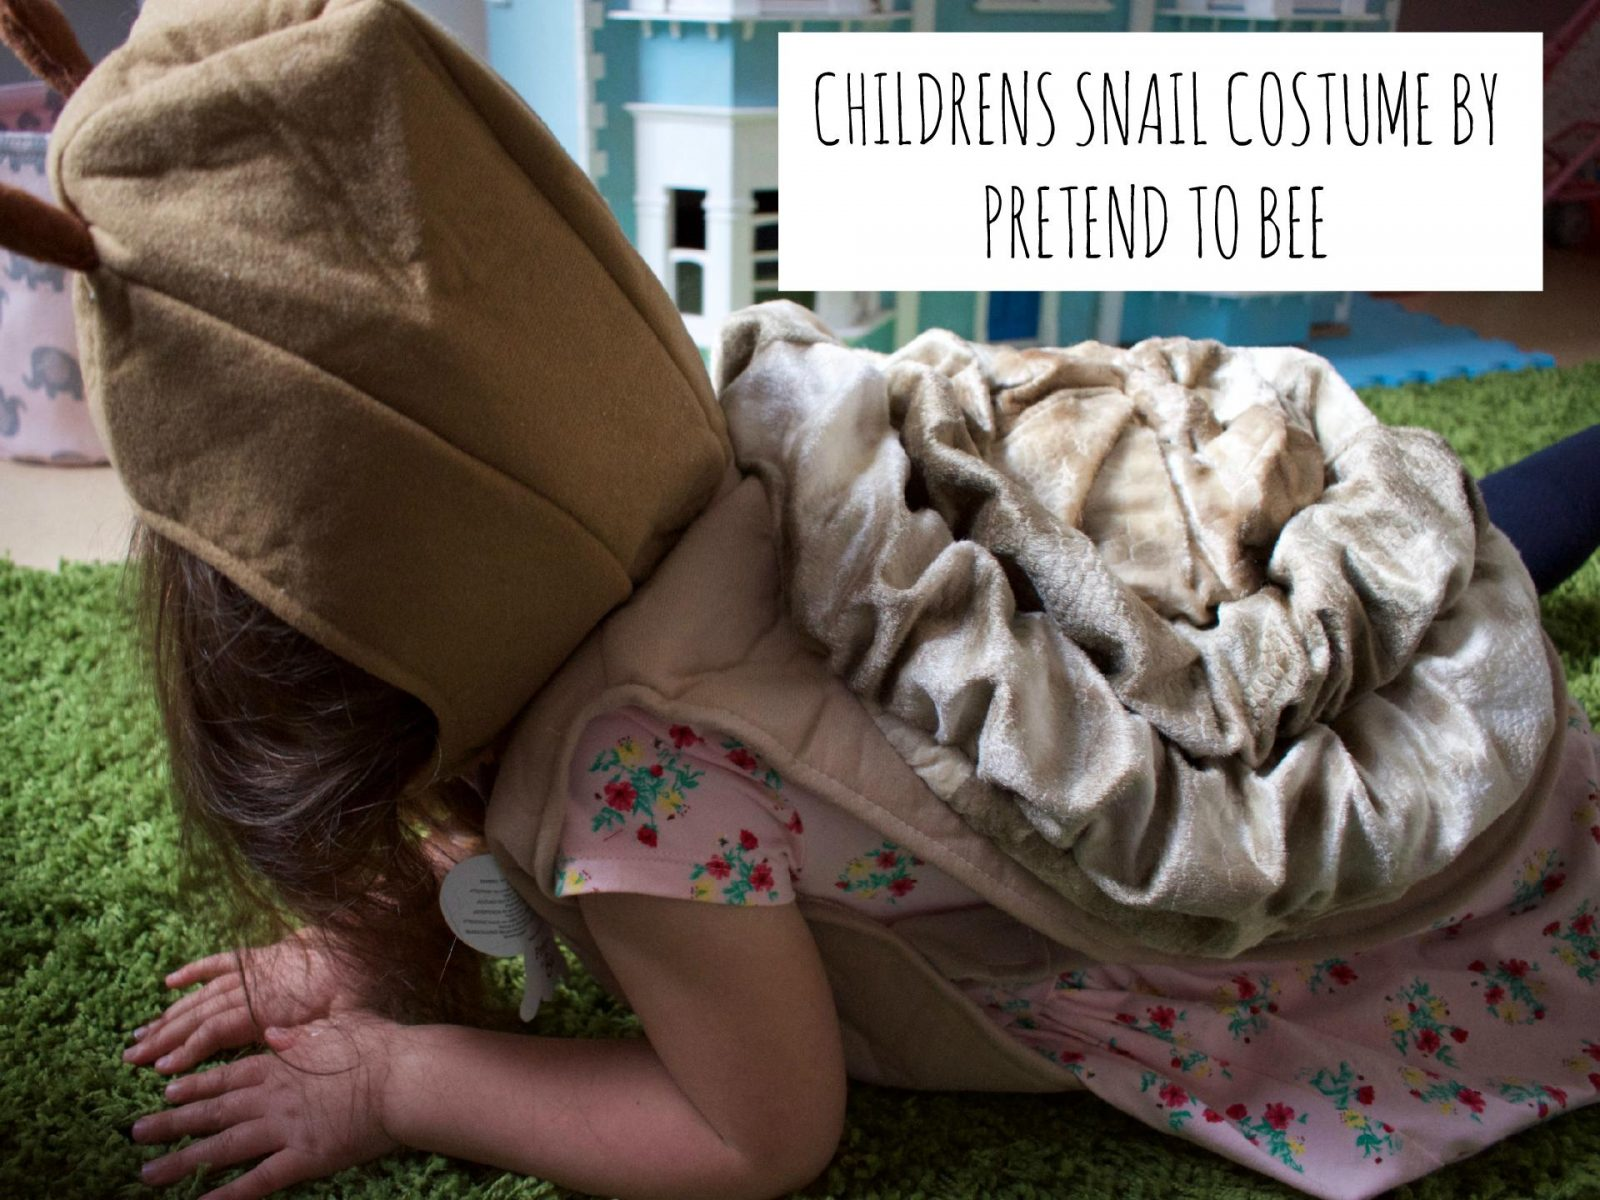 Dress Up As A Snail with Pretend To Bee